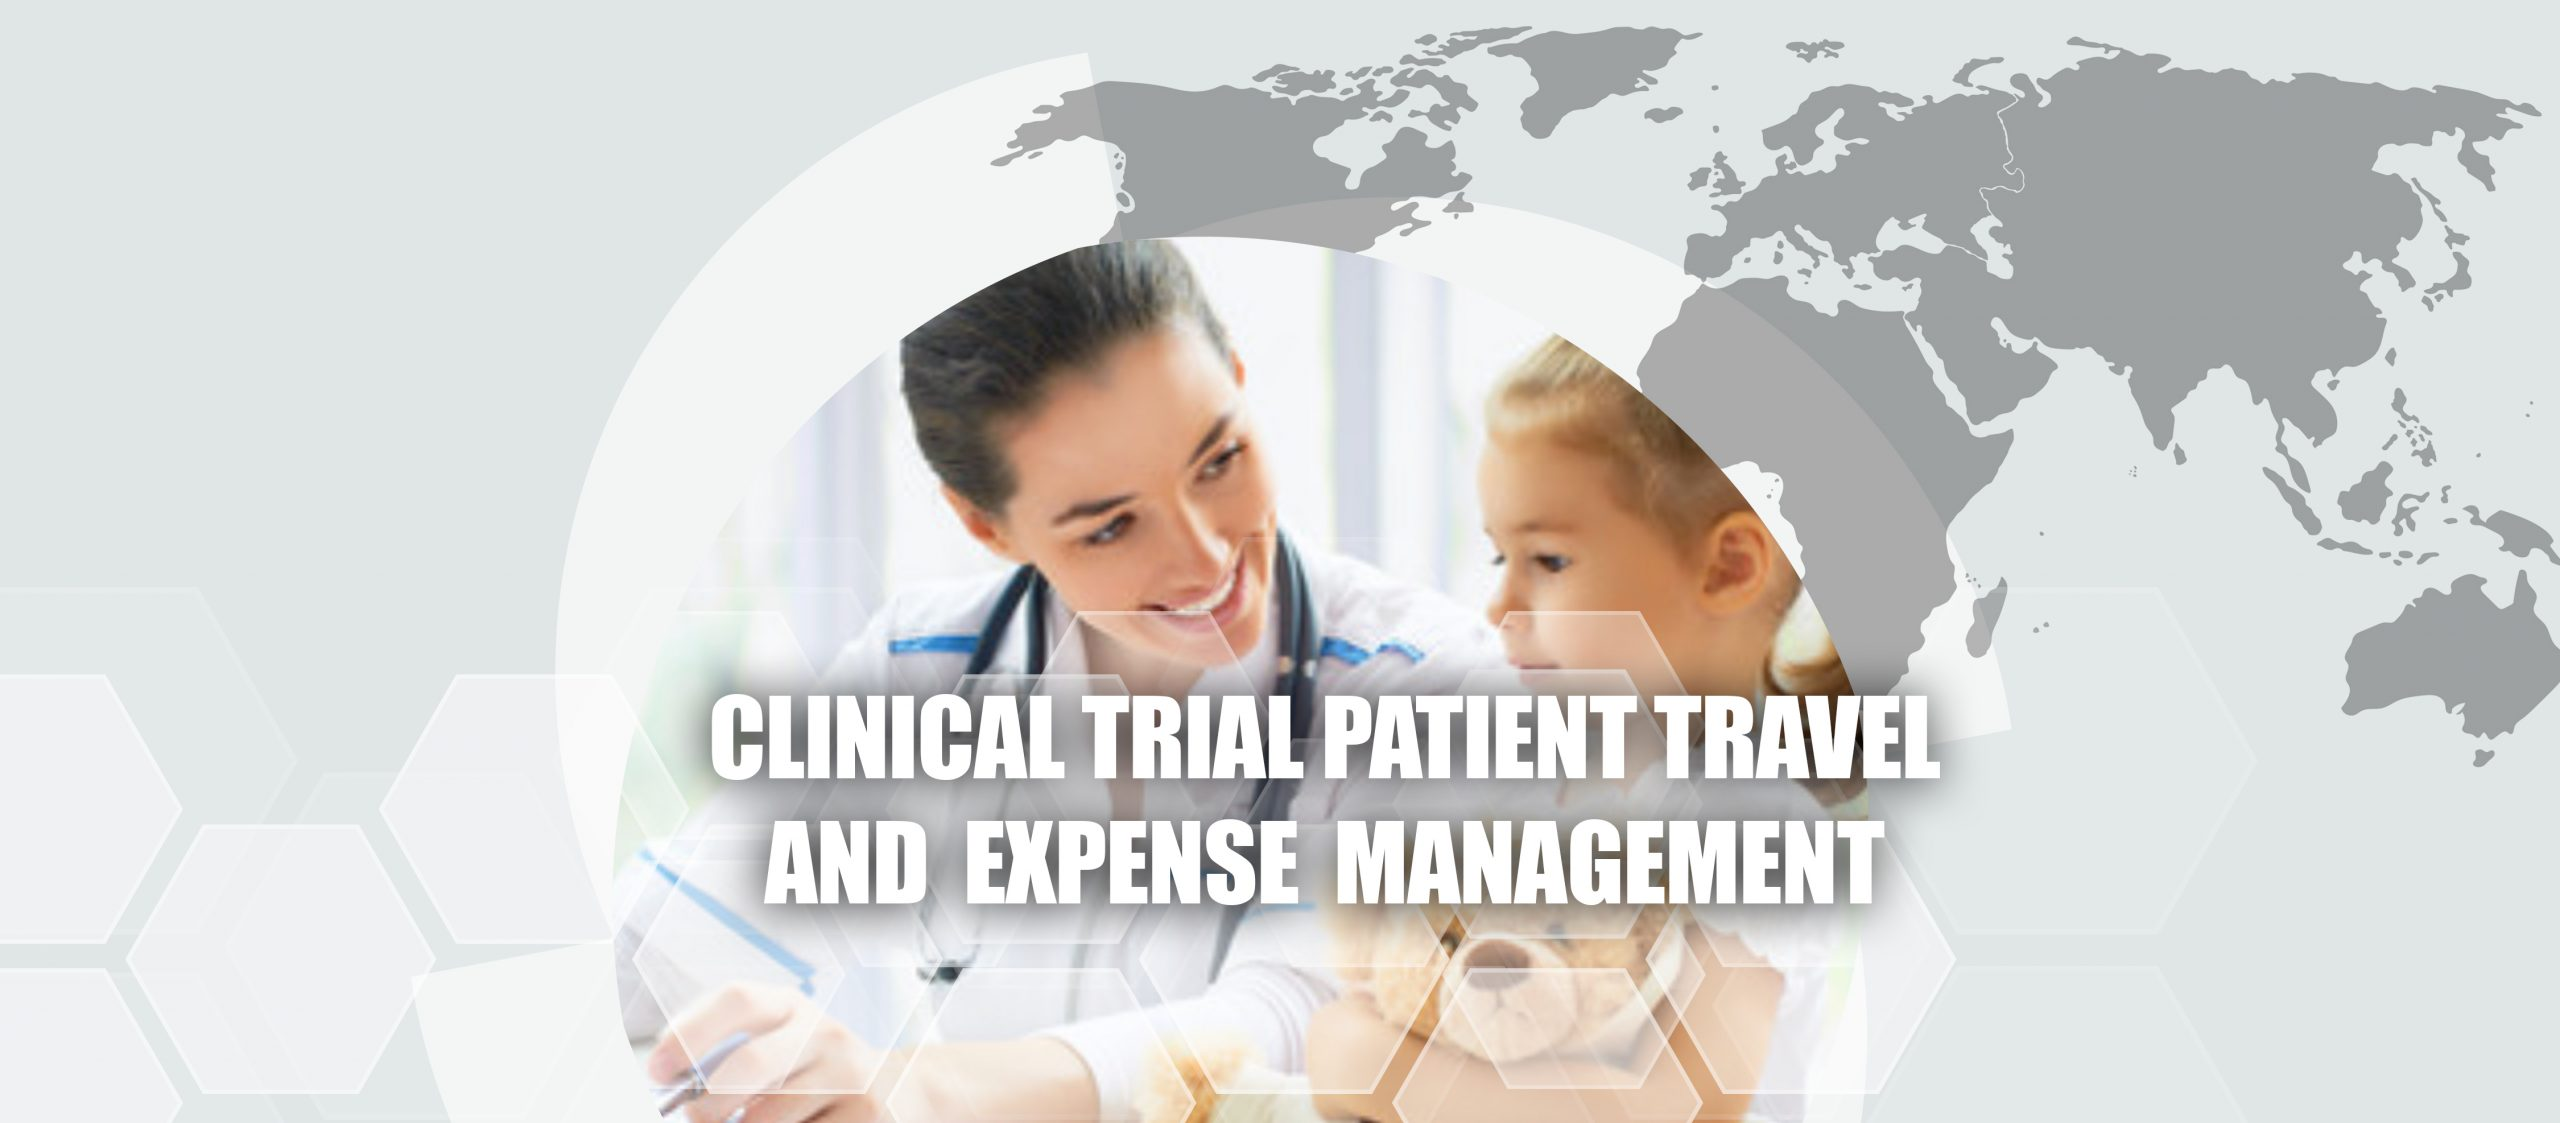 Colpitts Clinical Patient Travel